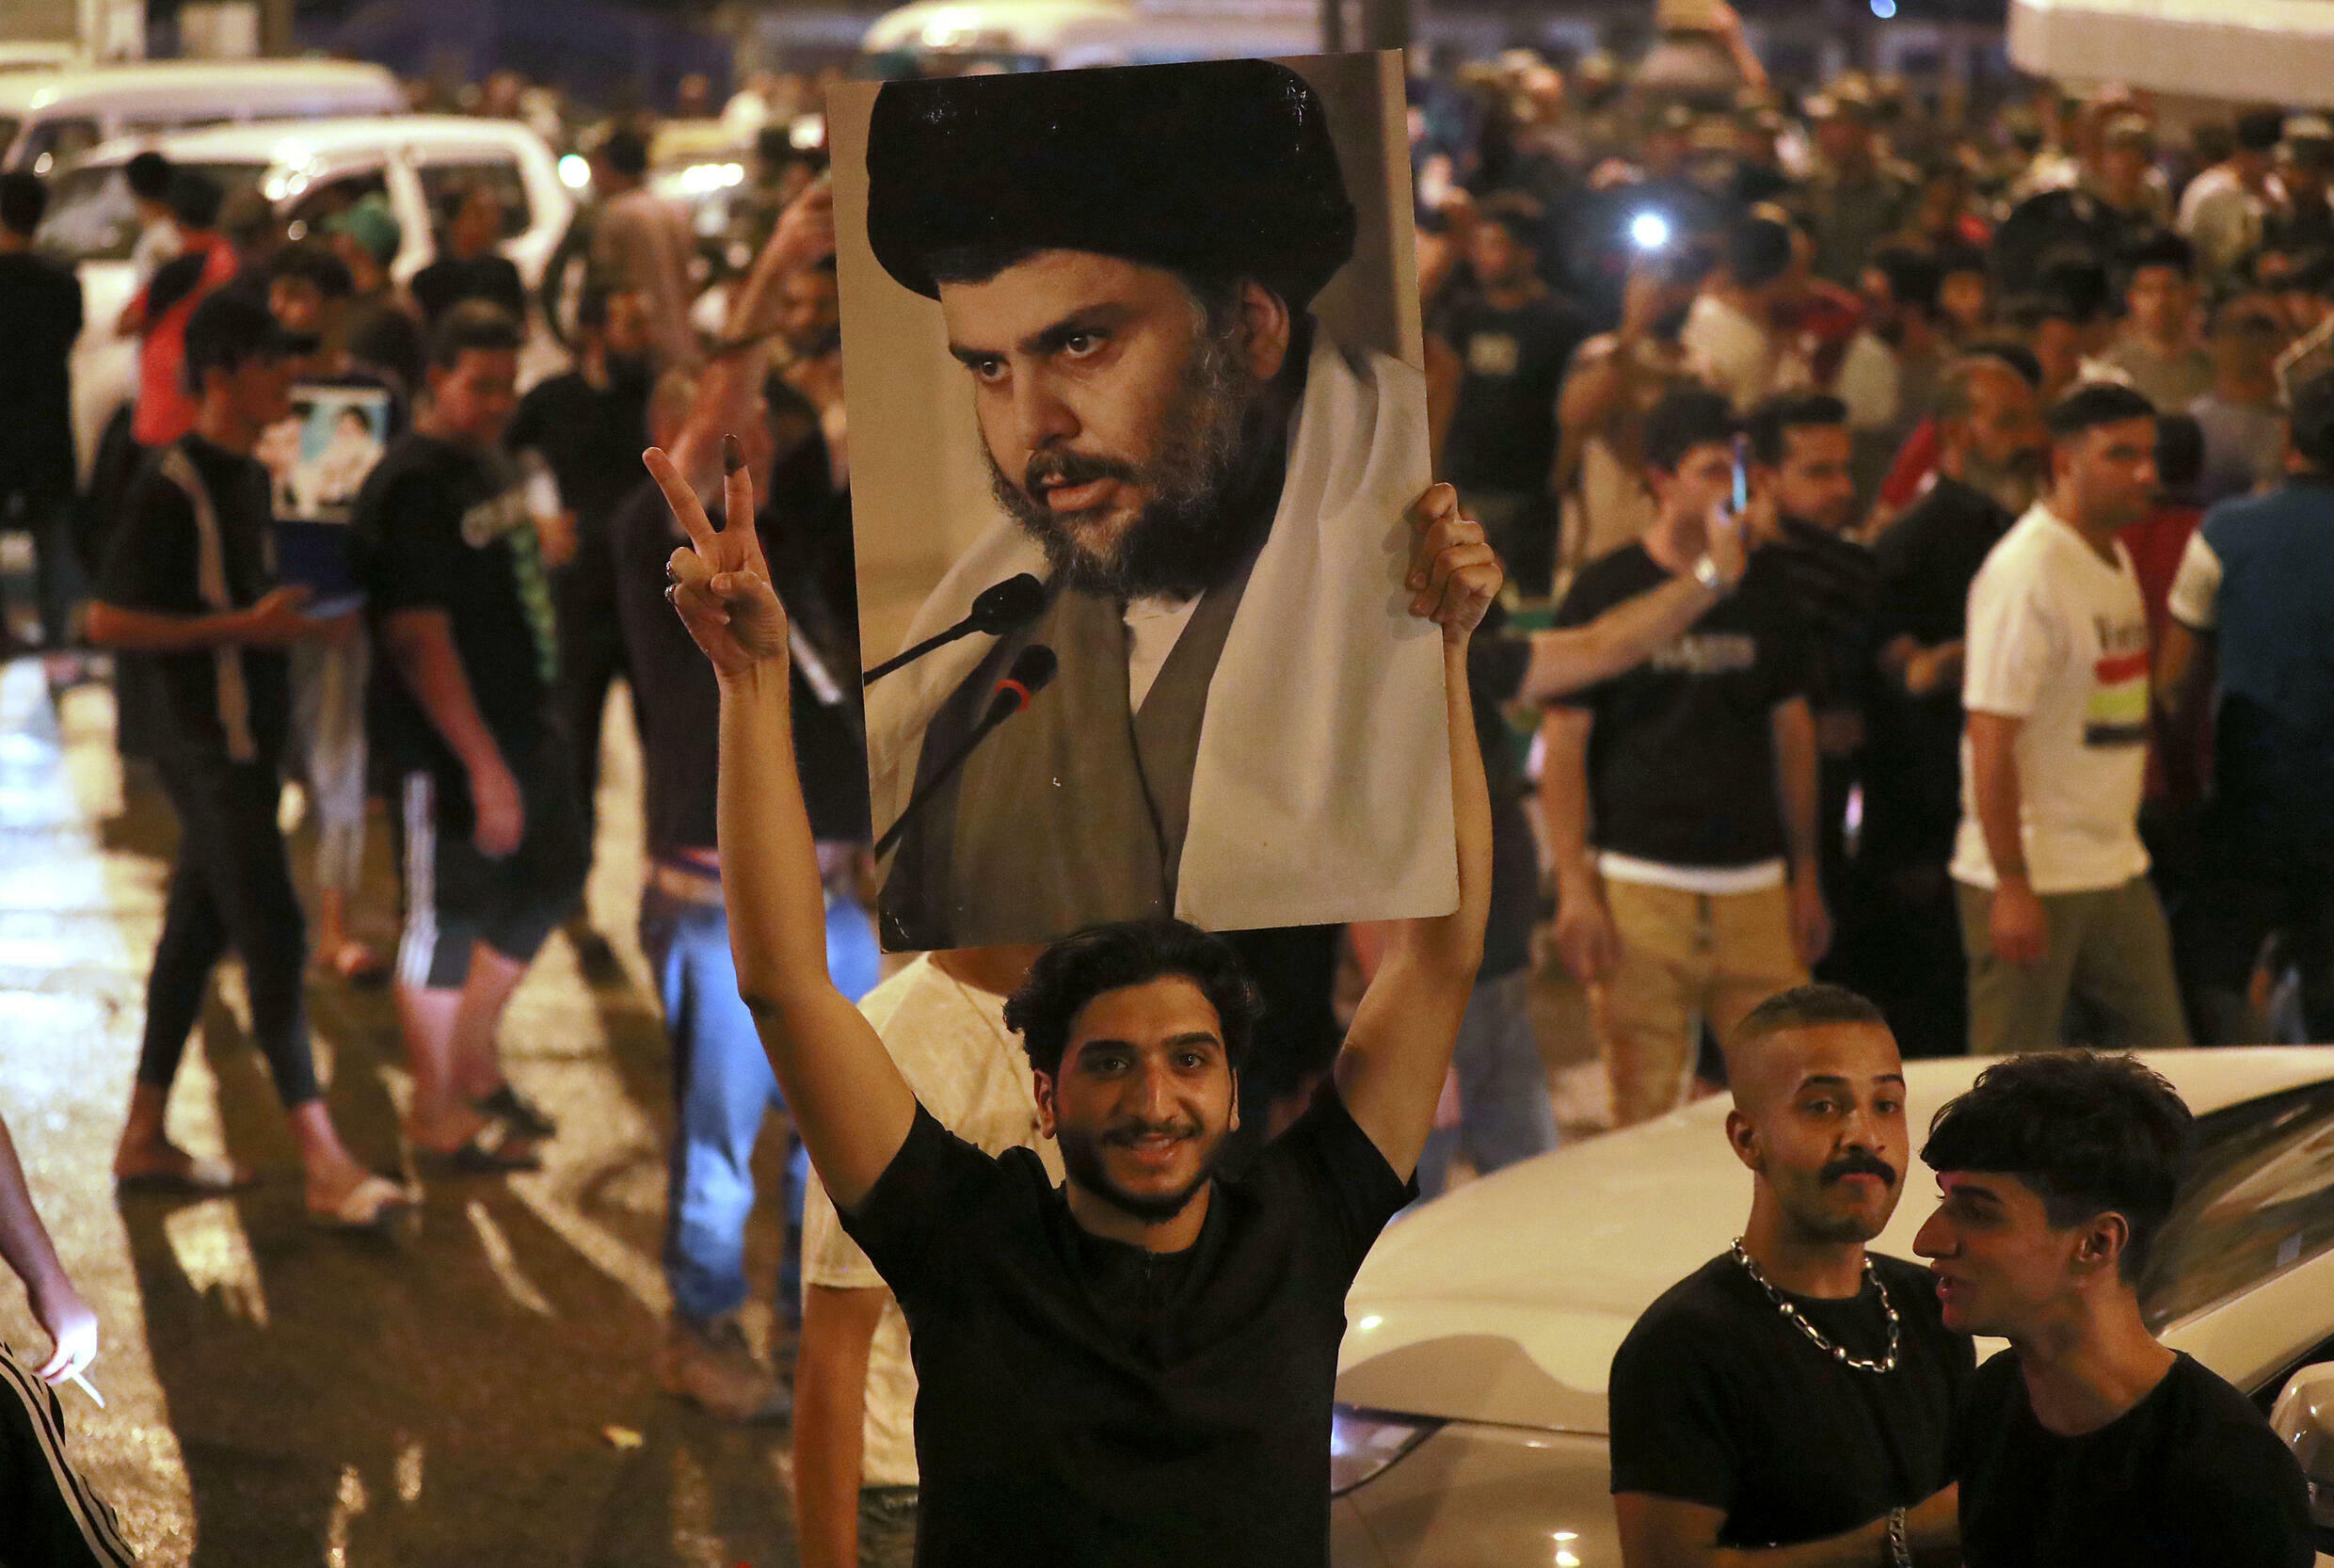 Supporters of Iraqi Shiite cleric Moqtada Sadr celebrate in Baghdad's Tahrir square on Monday after the announcement of parliamentary election results